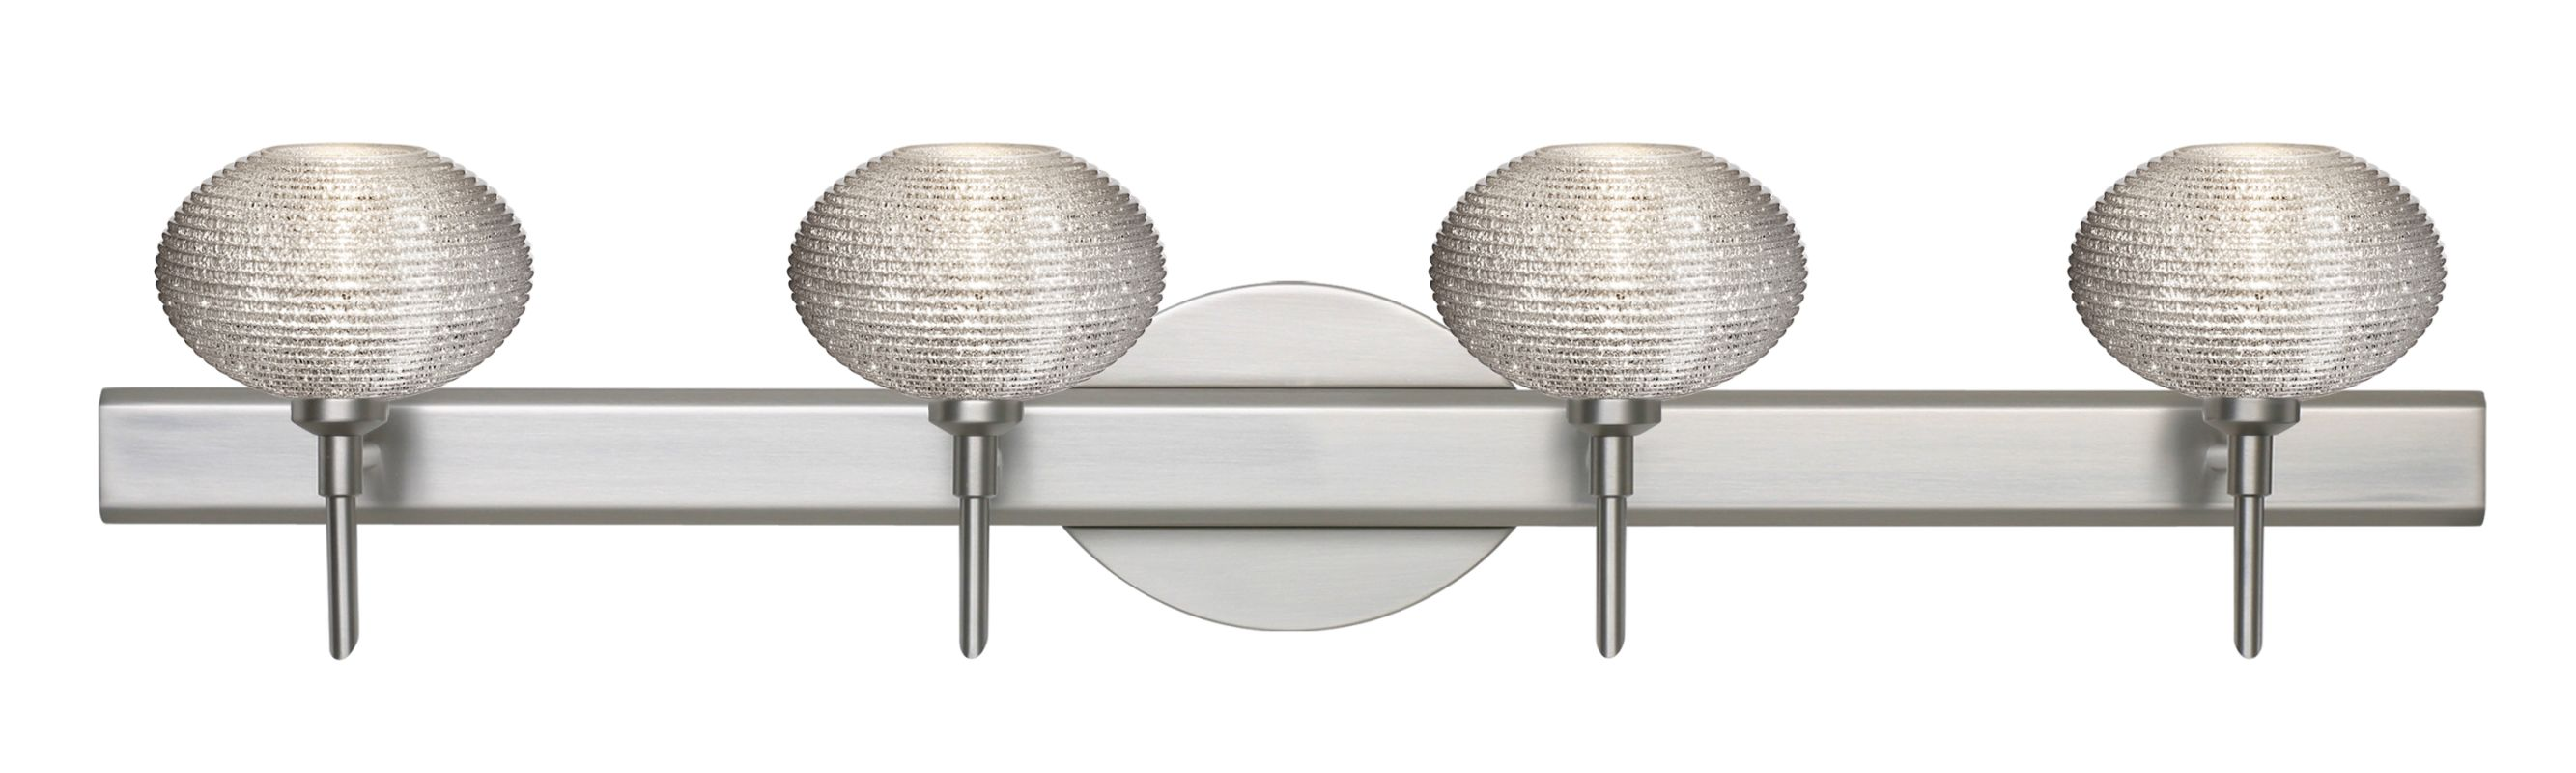 Besa Lighting 4SW-5612GL Lasso 4 Light Reversible Halogen Bathroom Sale $558.00 ITEM: bci2385985 ID#:4SW-5612GL-SN UPC: 767893823207 :